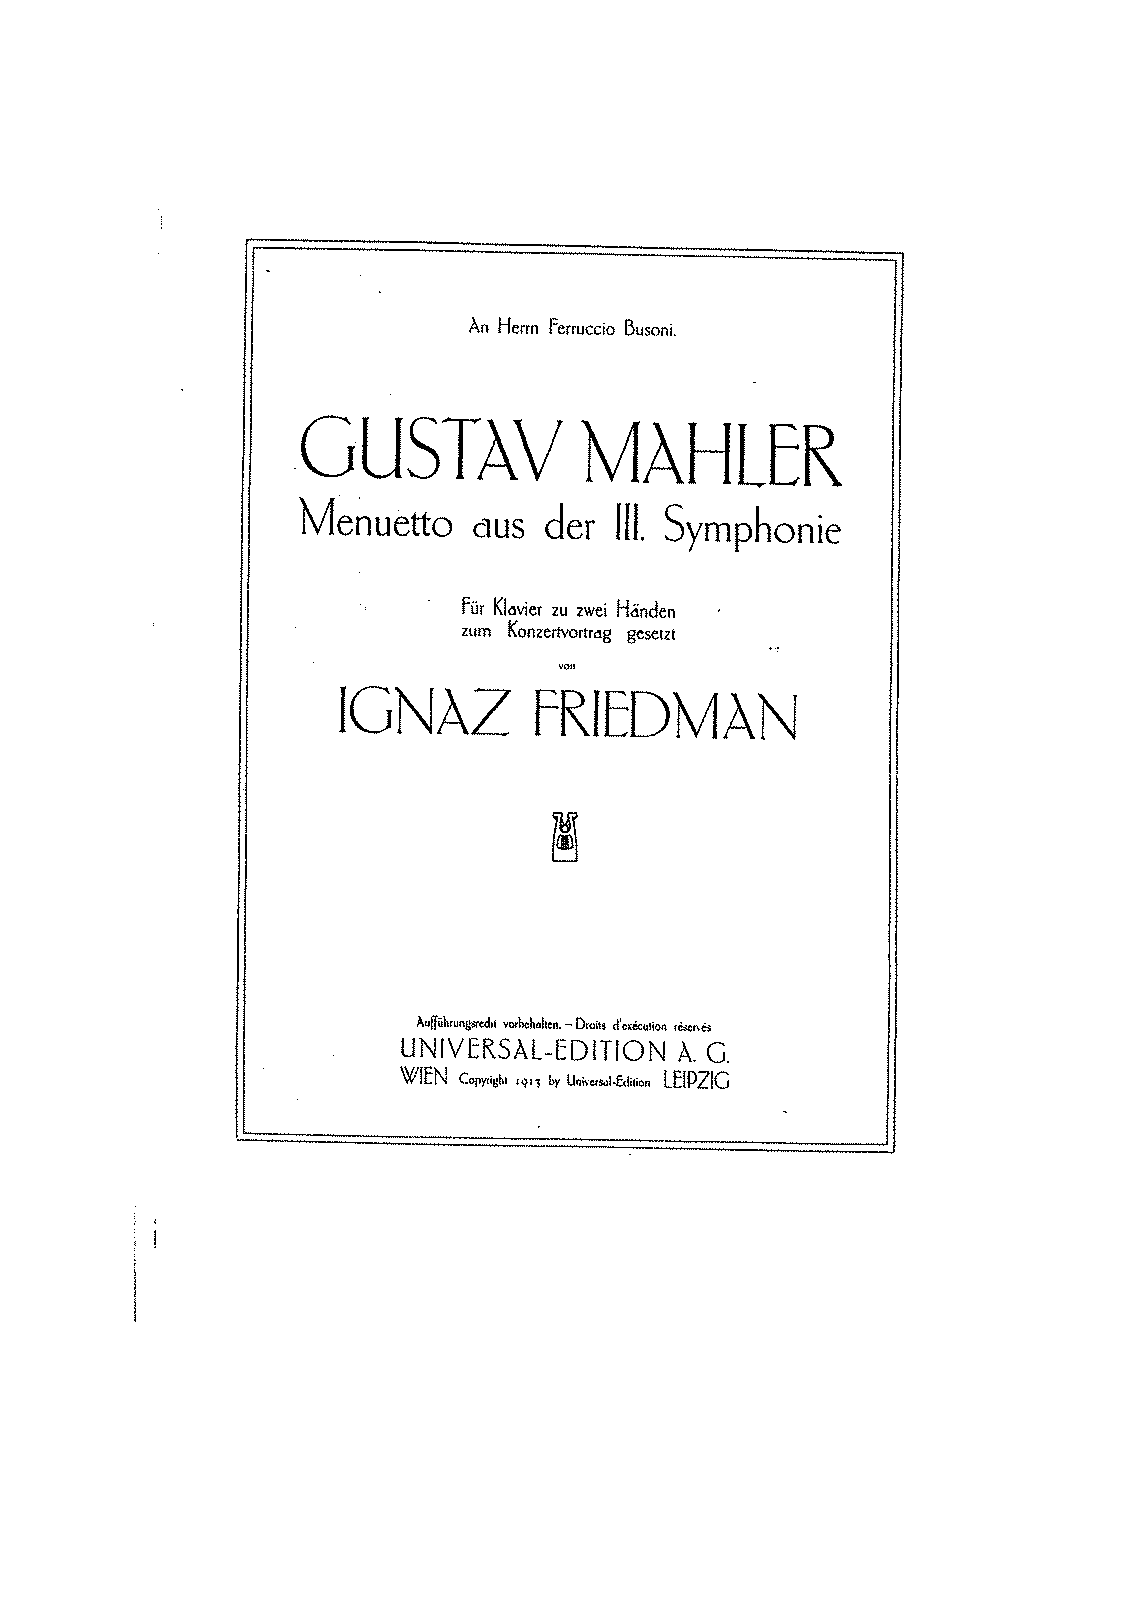 Friedman-Mahler - Minuet from Symphony No.3.pdf